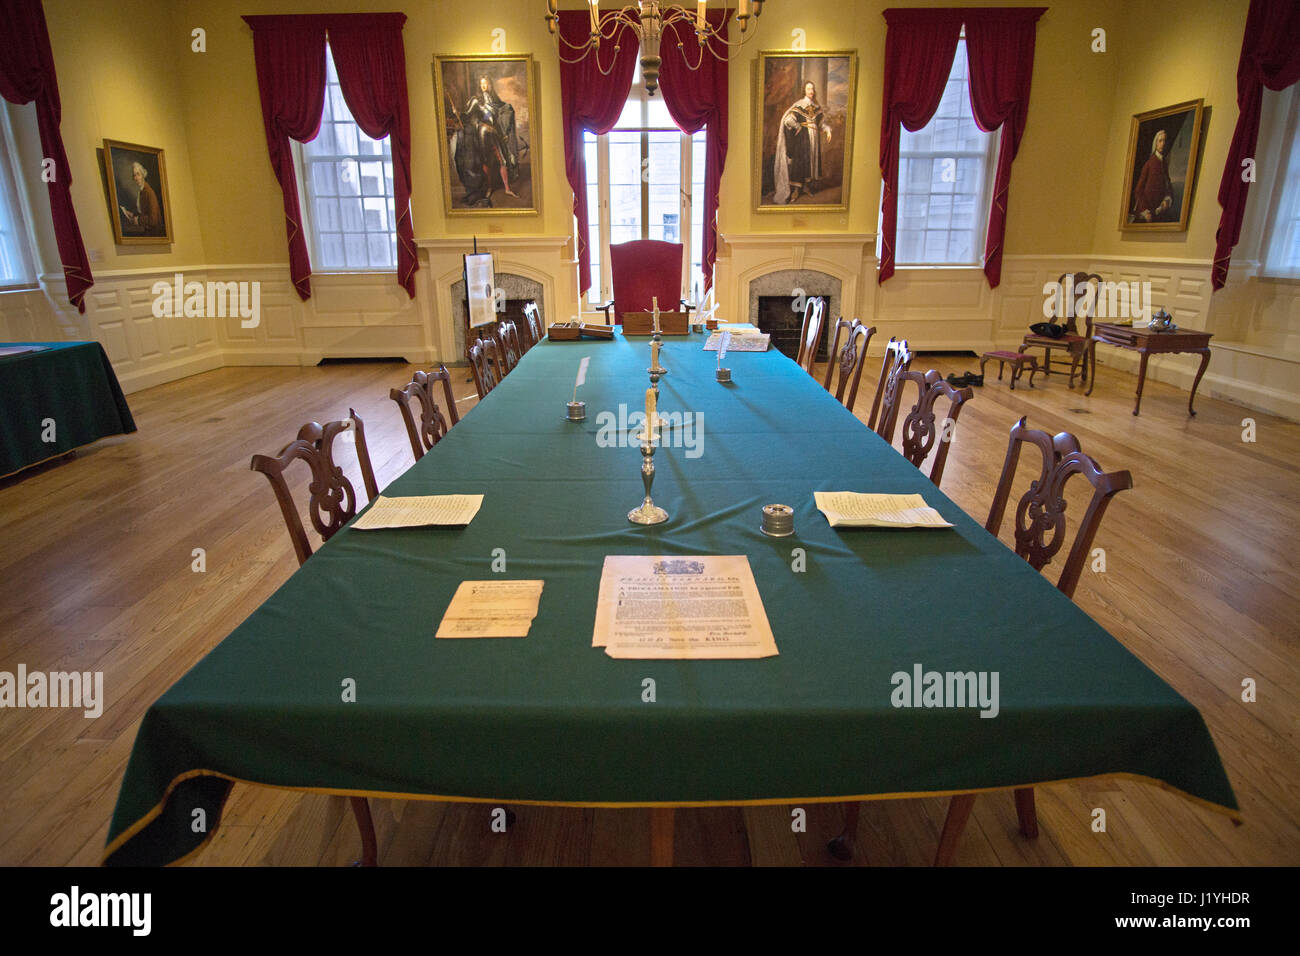 The Council Chamber room at the Old State House in Boston, Massachusetts. - Stock Image